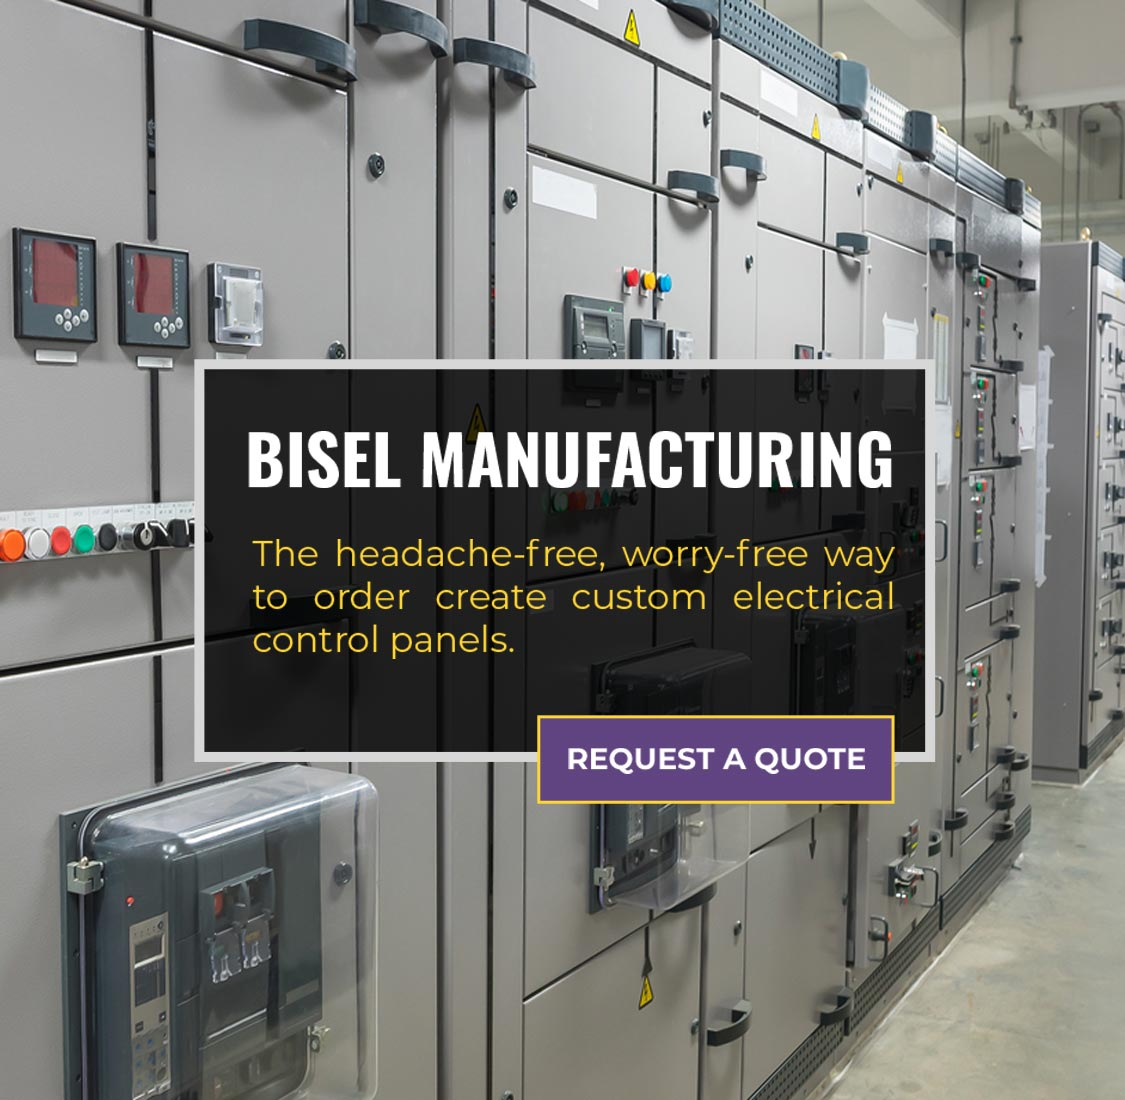 Bisel Manufacturing: The headache-free worry-free way to order custom electrical panels